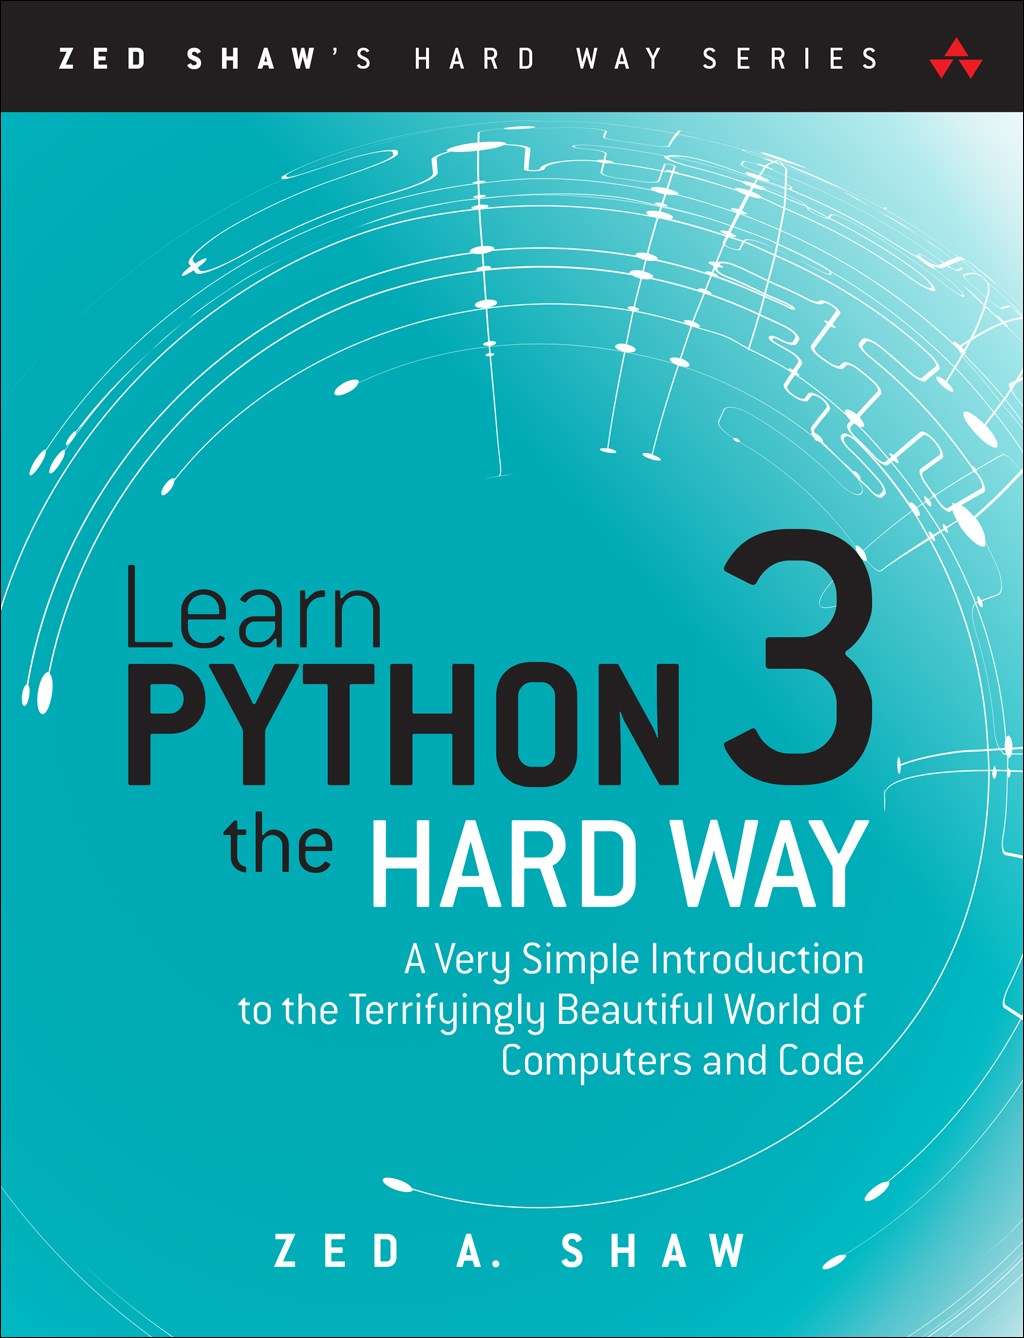 Learn Python 3 the Hard Way: A Very Simple Introduction to the Terrifyingly Beautiful World of Computers and Code